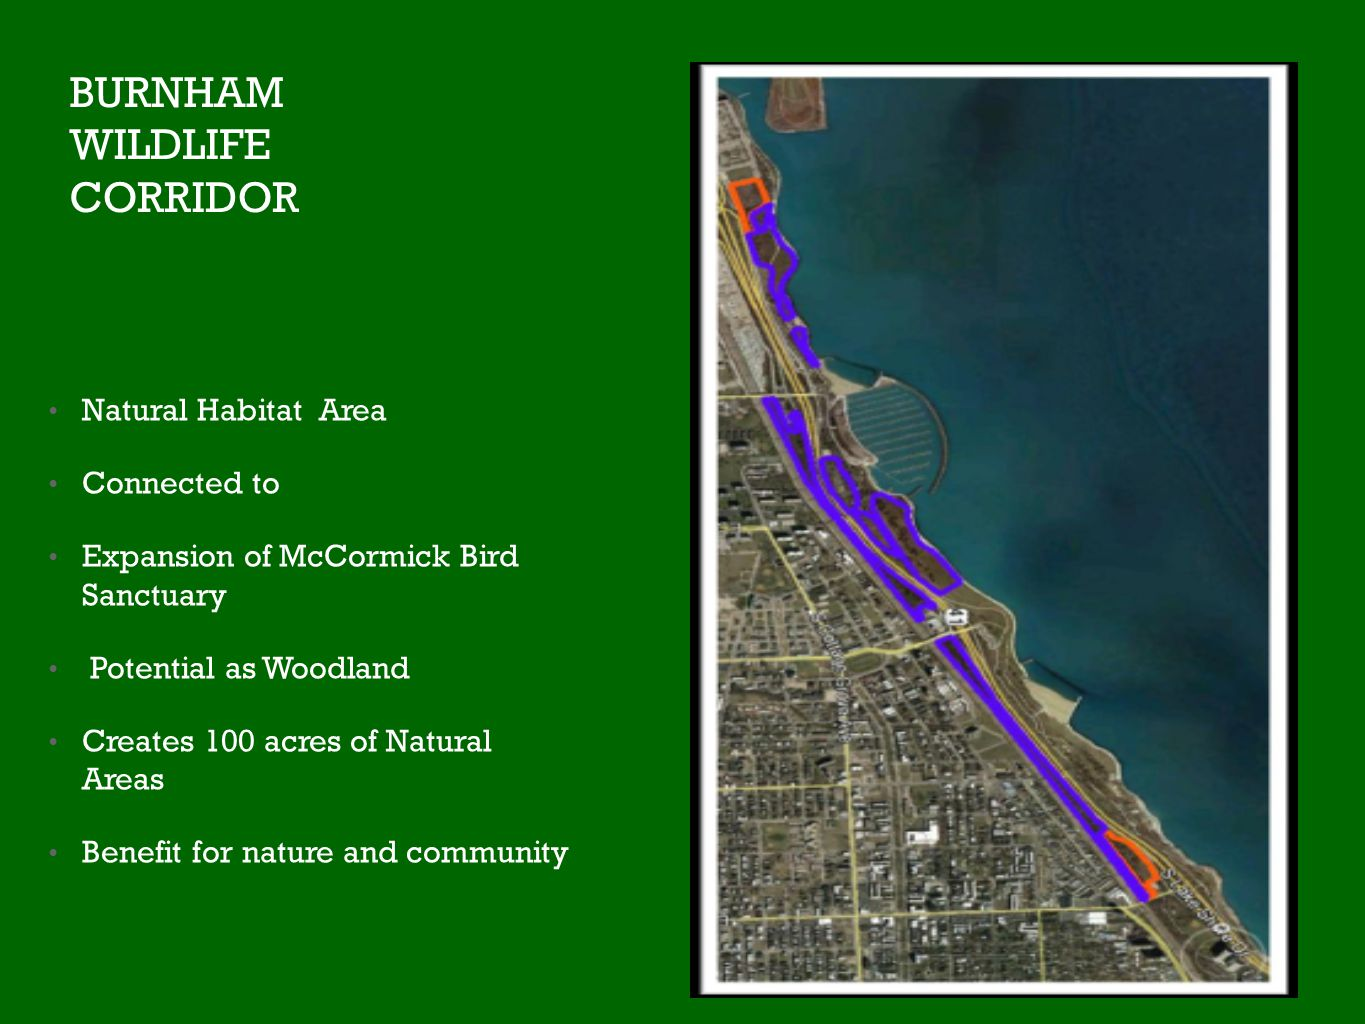 BURNHAM WILDLIFE CORRIDOR Natural Habitat Area Connected to Expansion of McCormick Bird Sanctuary Potential as Woodland Creates 100 acres of Natural Areas Benefit for nature and community